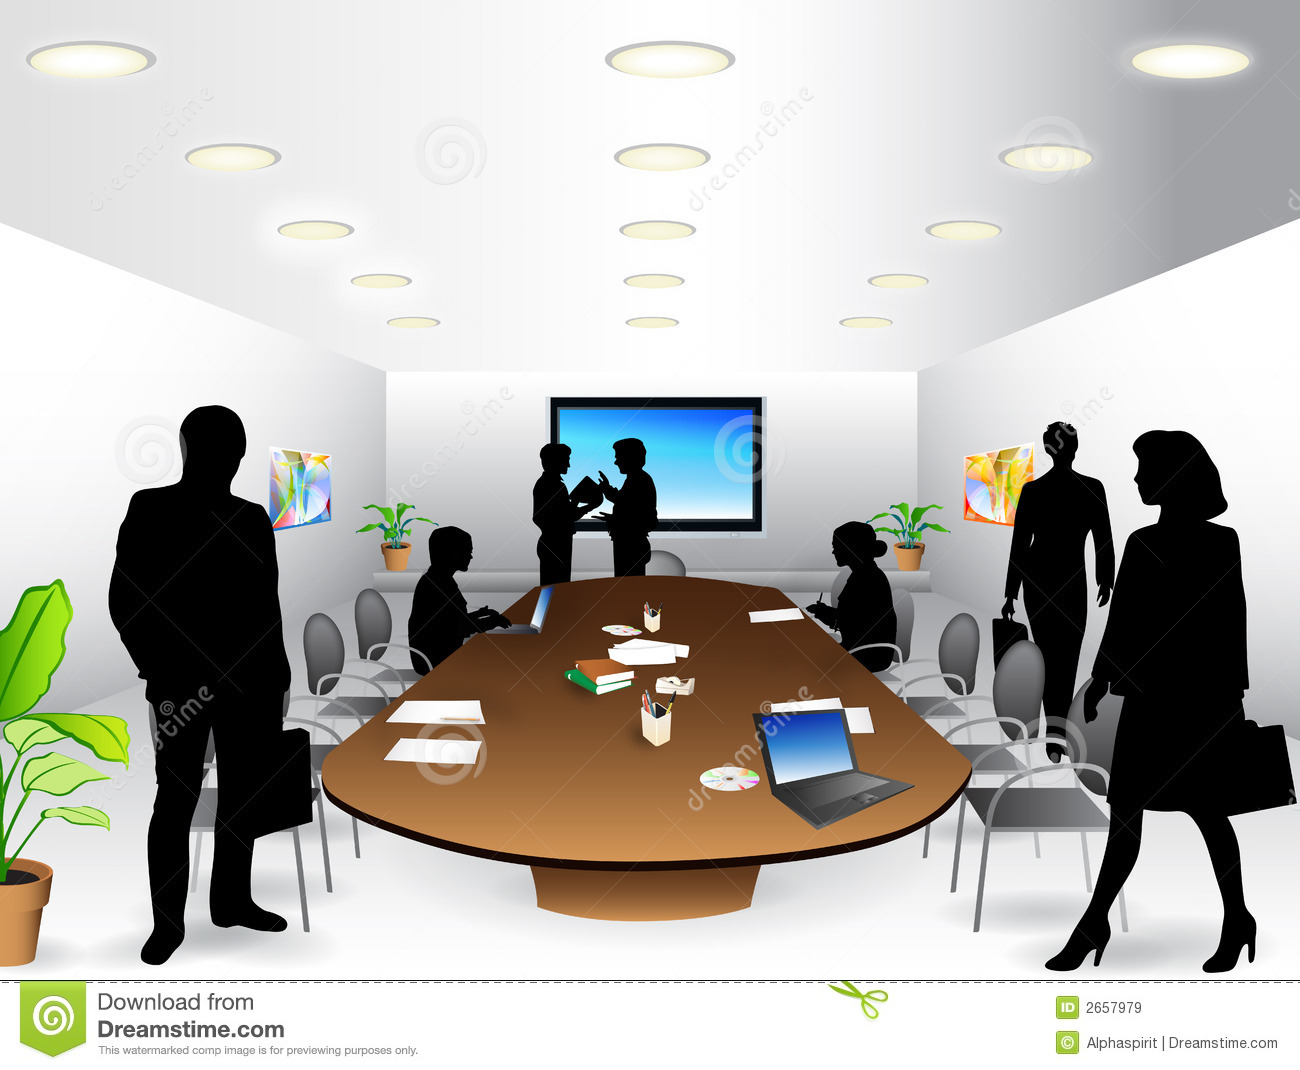 conference room clipart free - photo #3